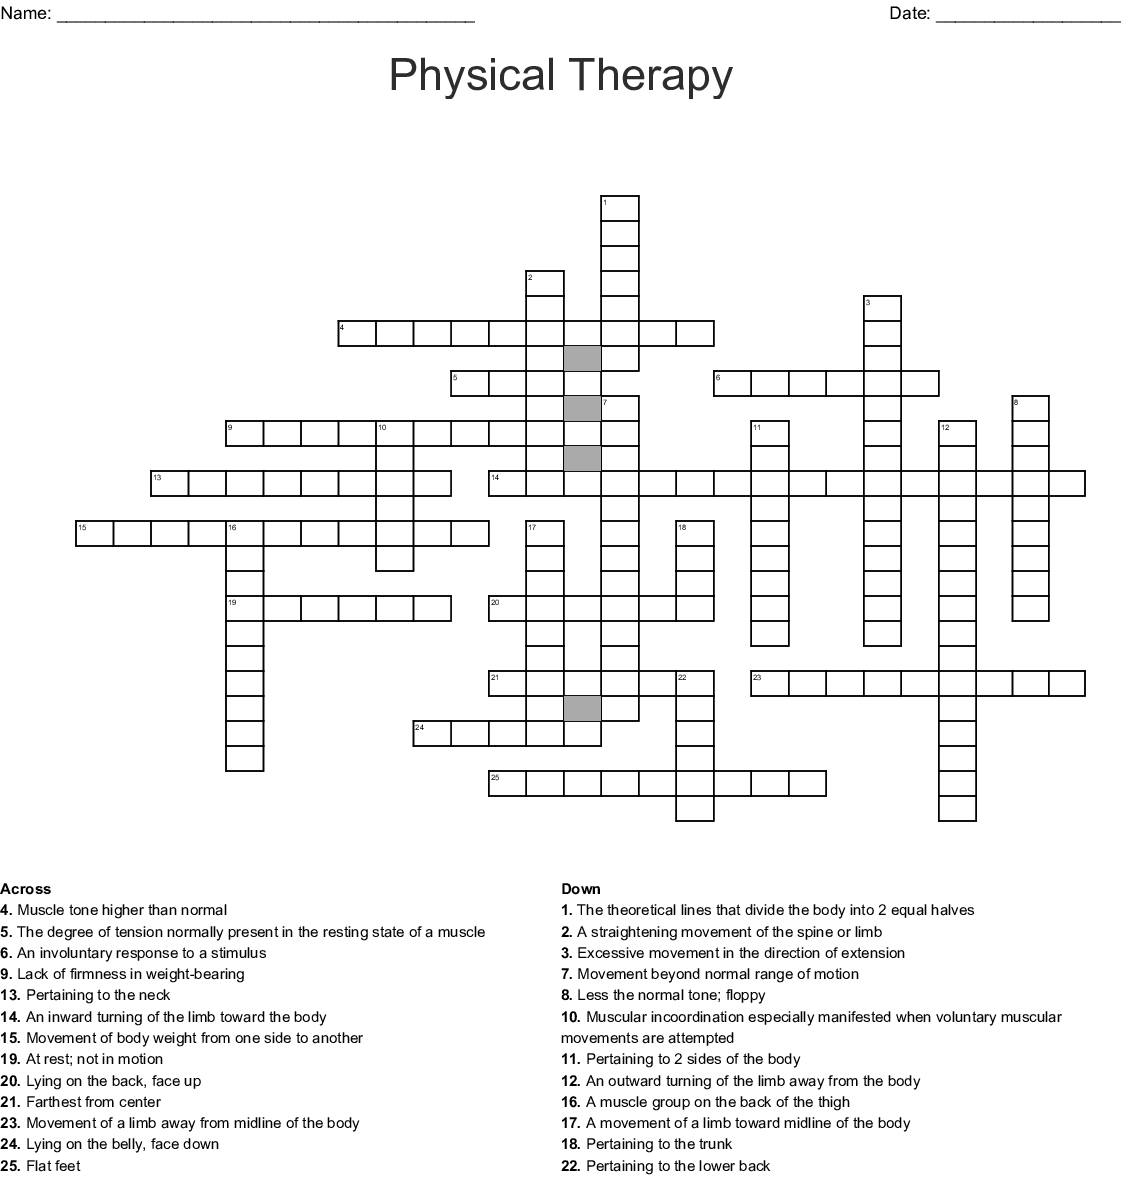 Physical Therapy Crossword Wordmint